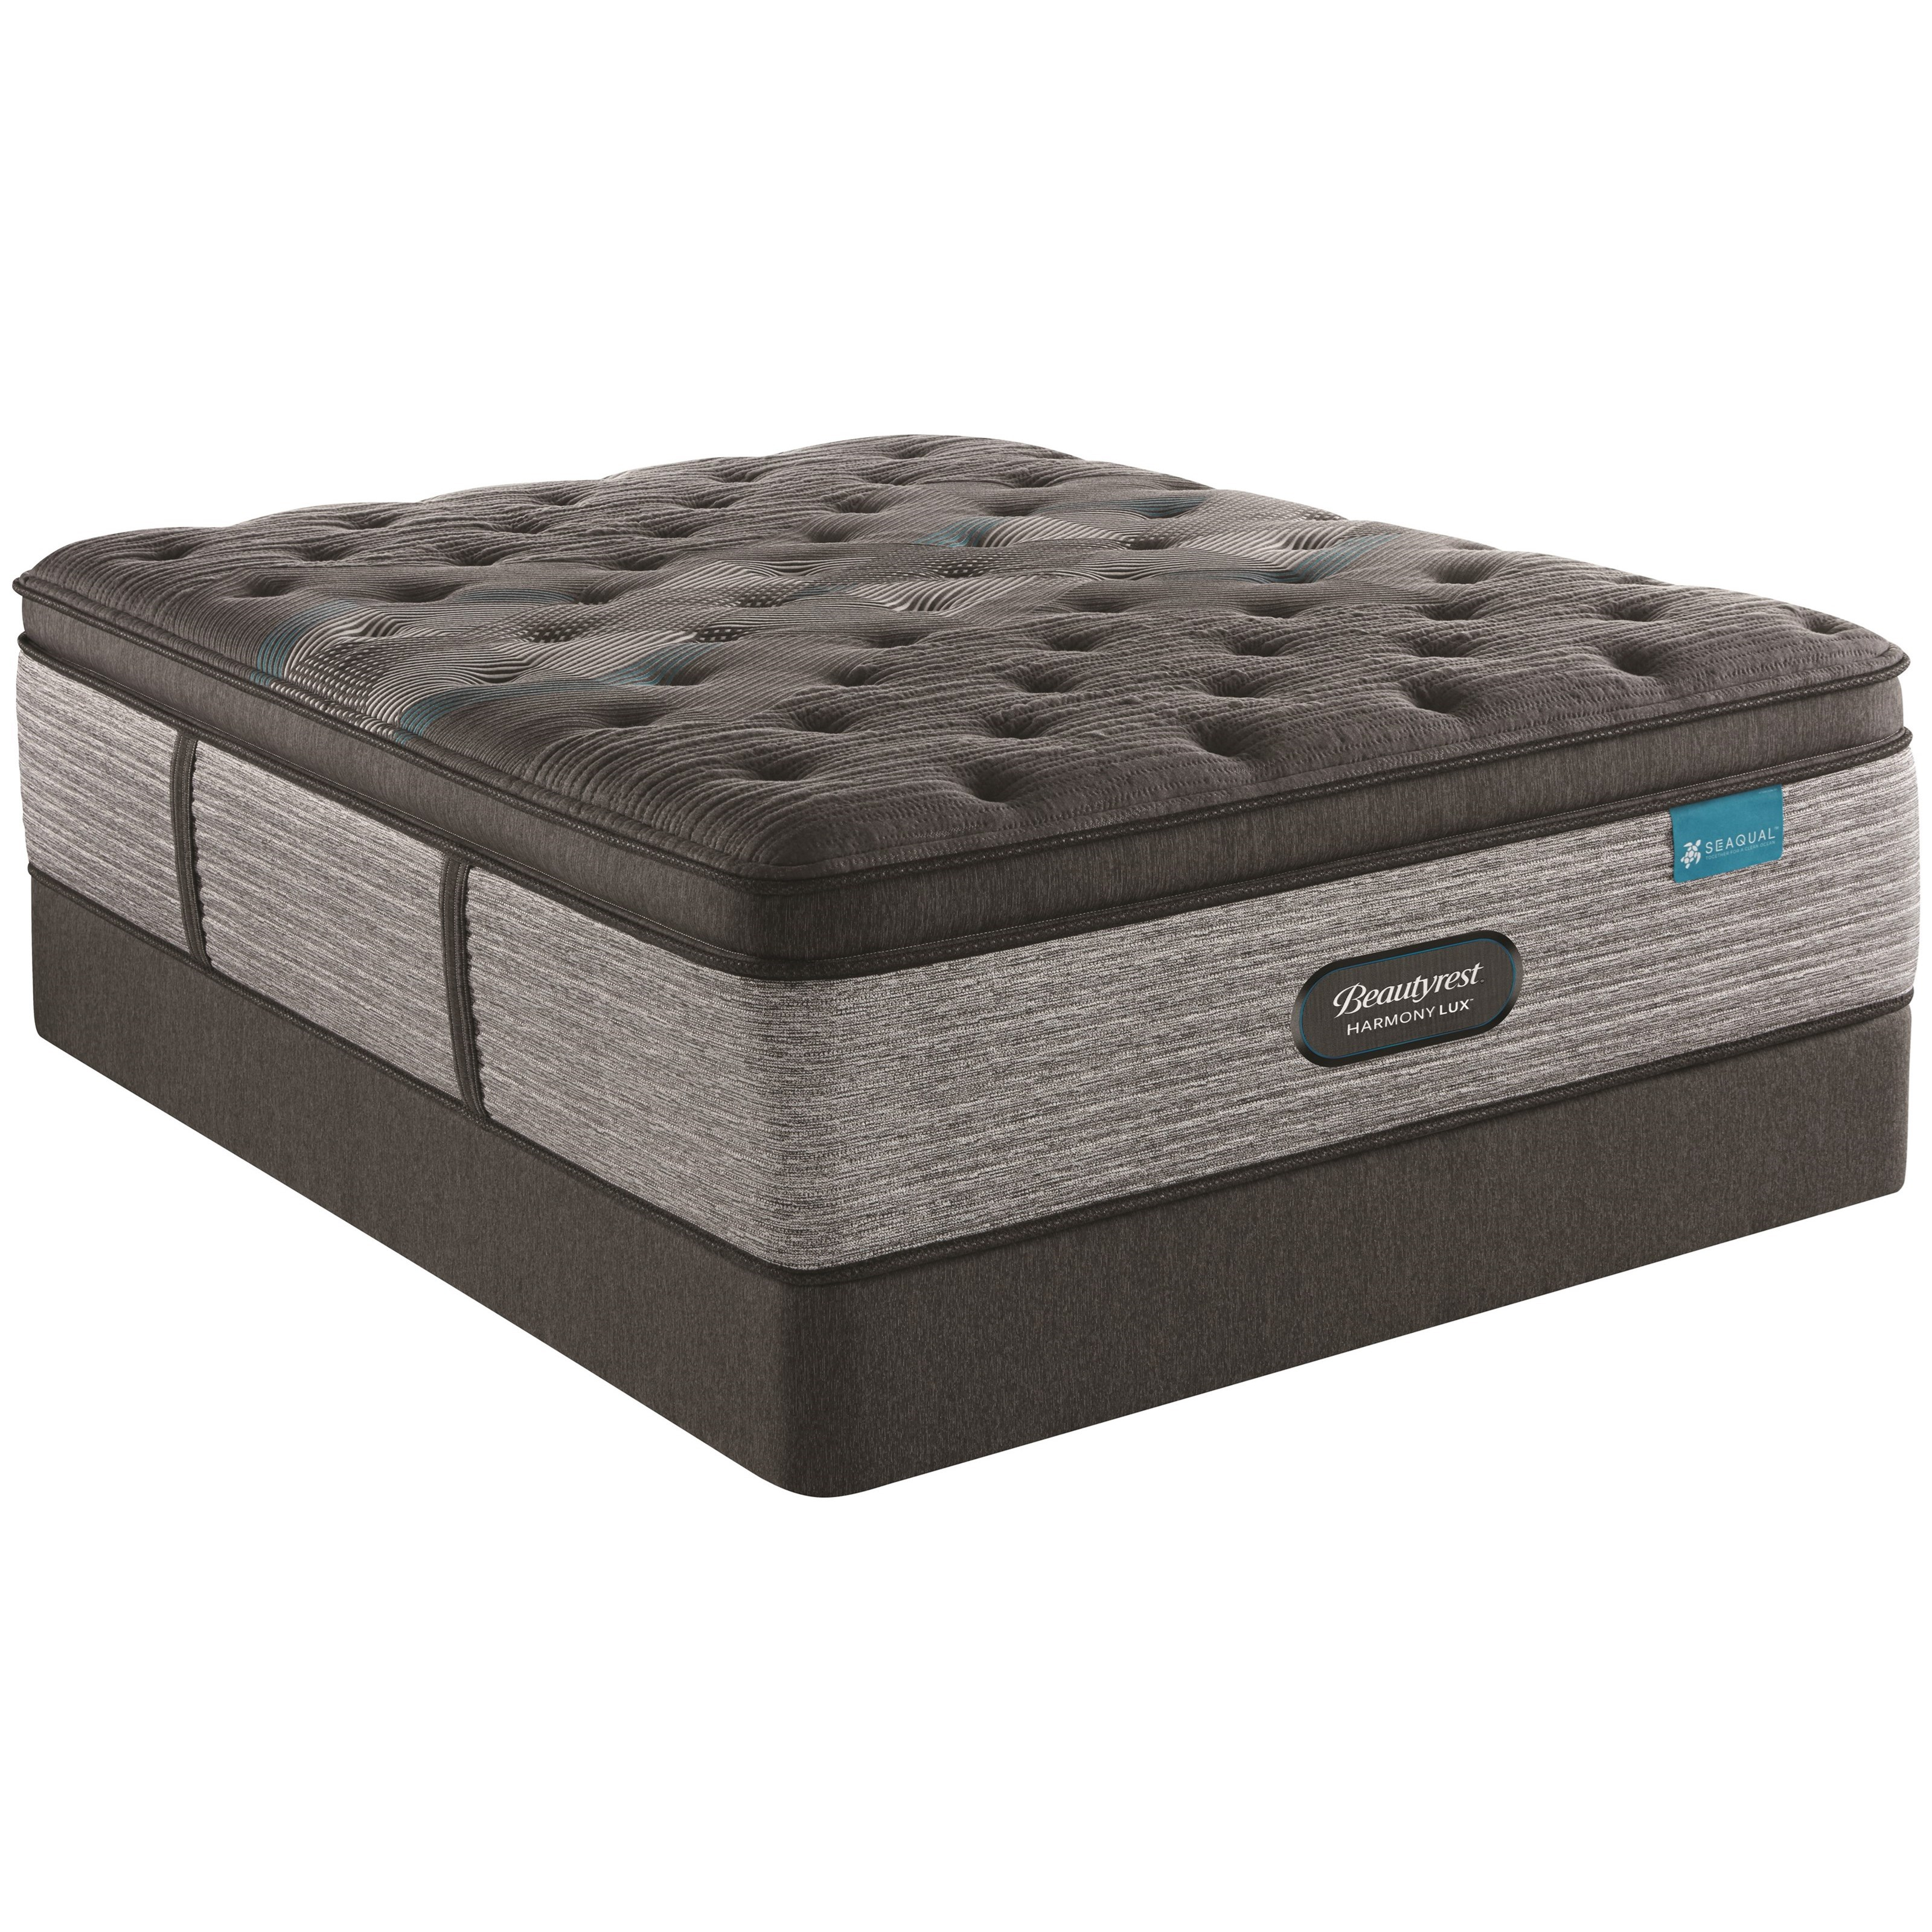 "Diamond Series Ultra Plush PT Full 17 1/2"" Ultra Plush PT Set by Beautyrest at Novello Home Furnishings"